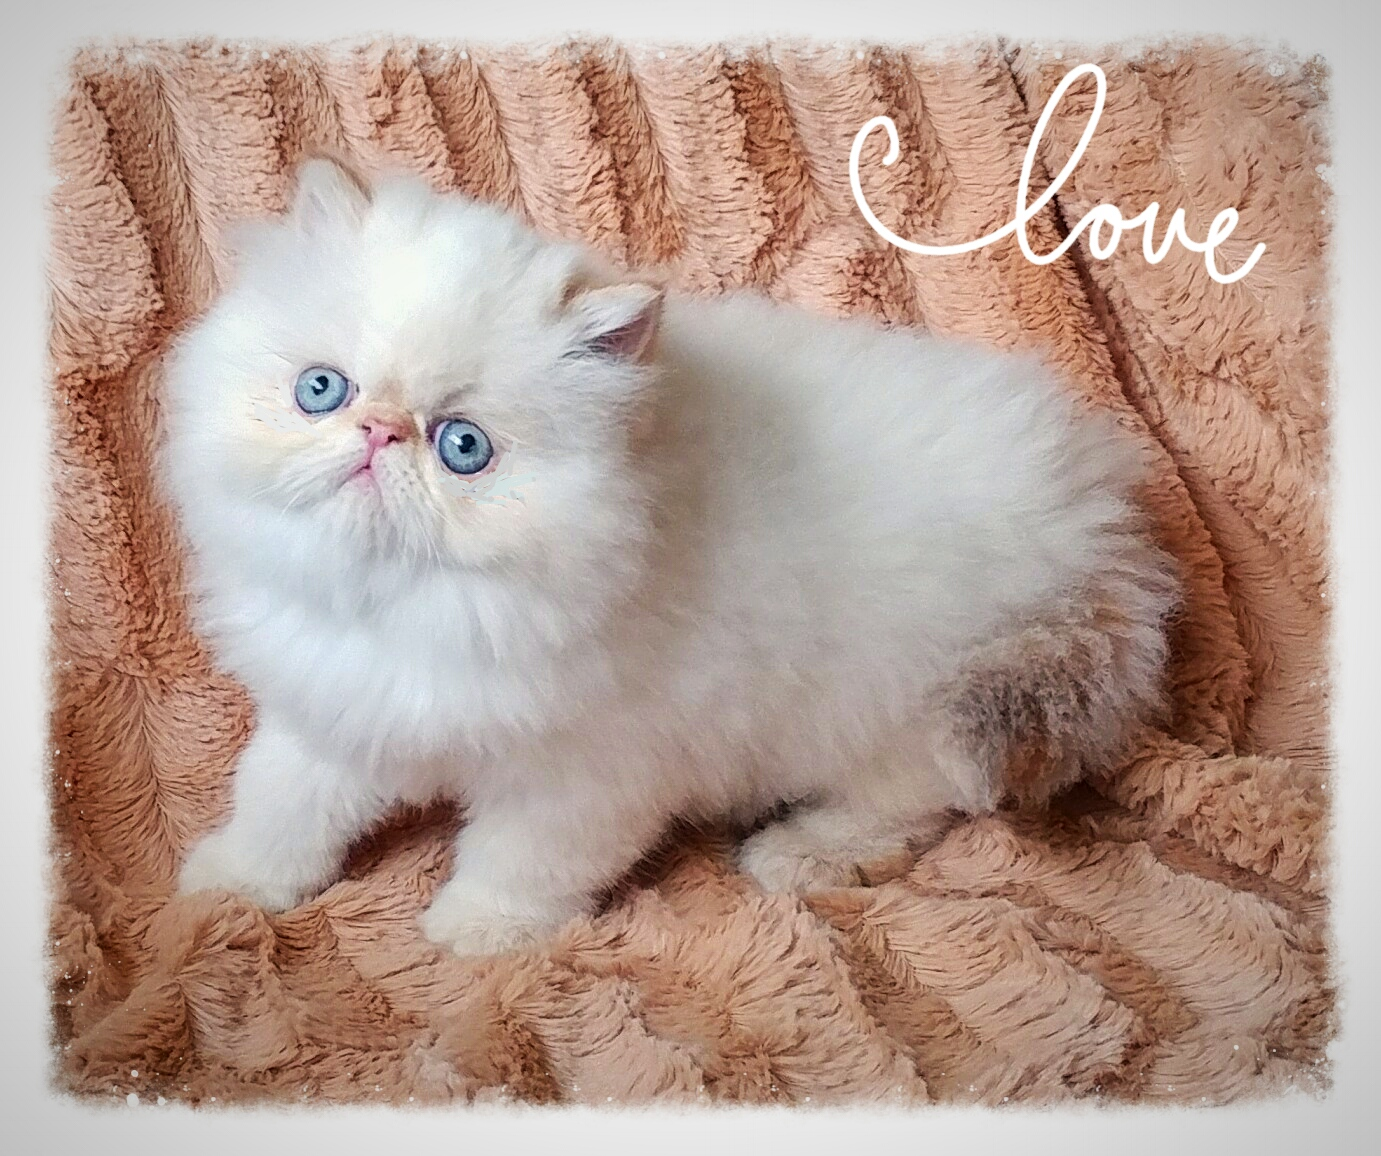 Lela Persian and Exotic shorthair